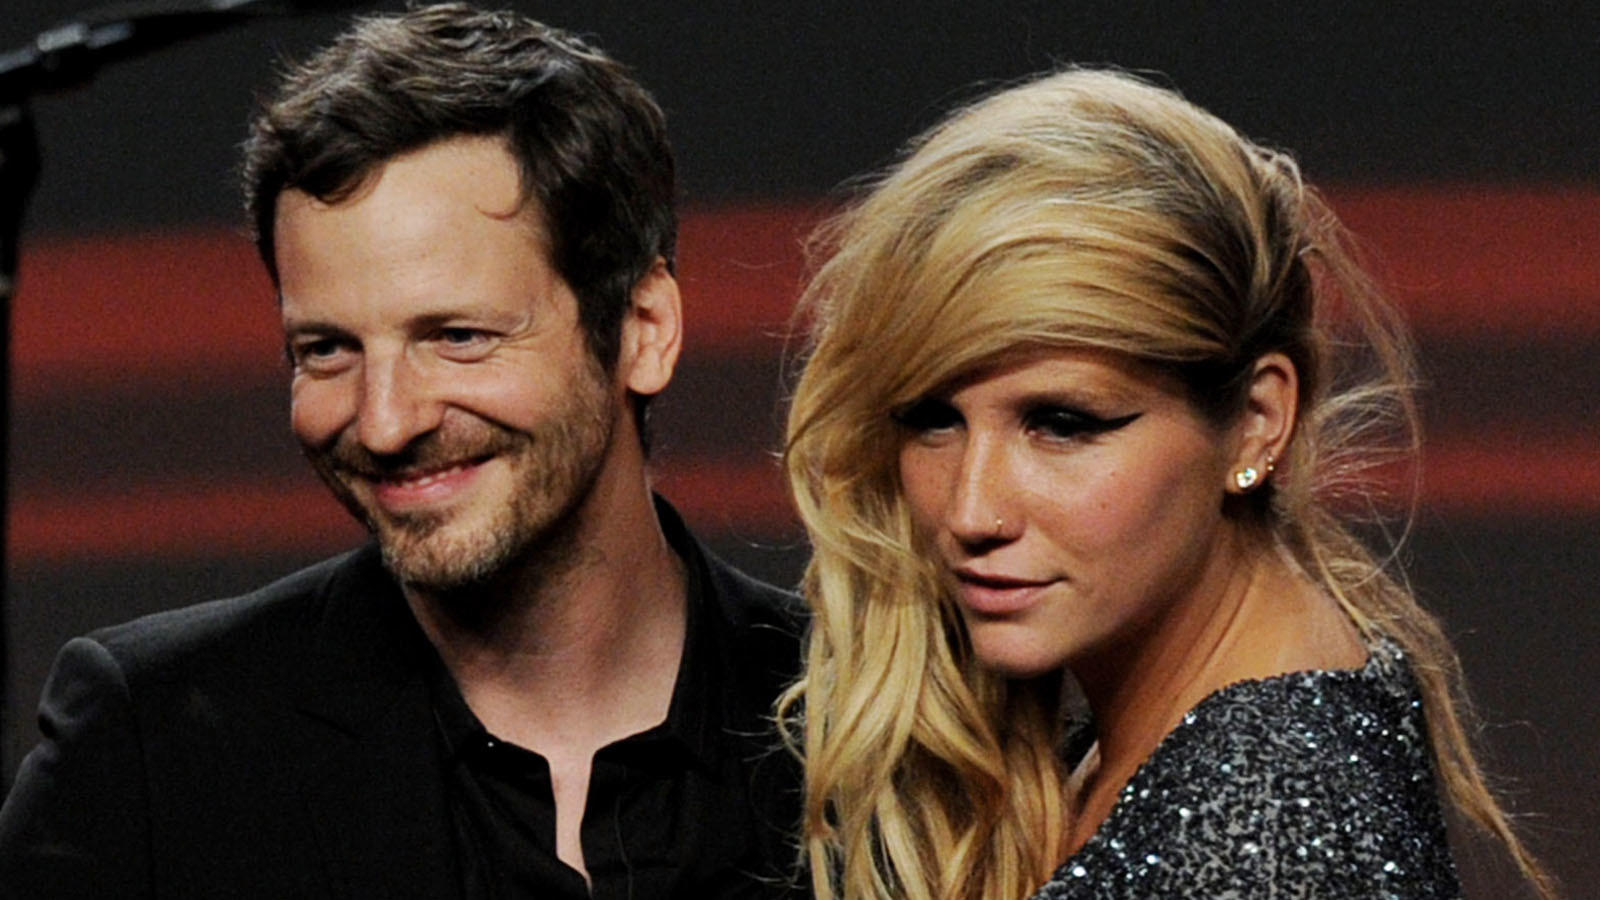 The protracted legal battle between Dr. Luke, left, and Kesha has brought Lady Gaga into the fray. (Kevin Winter / Getty Images)